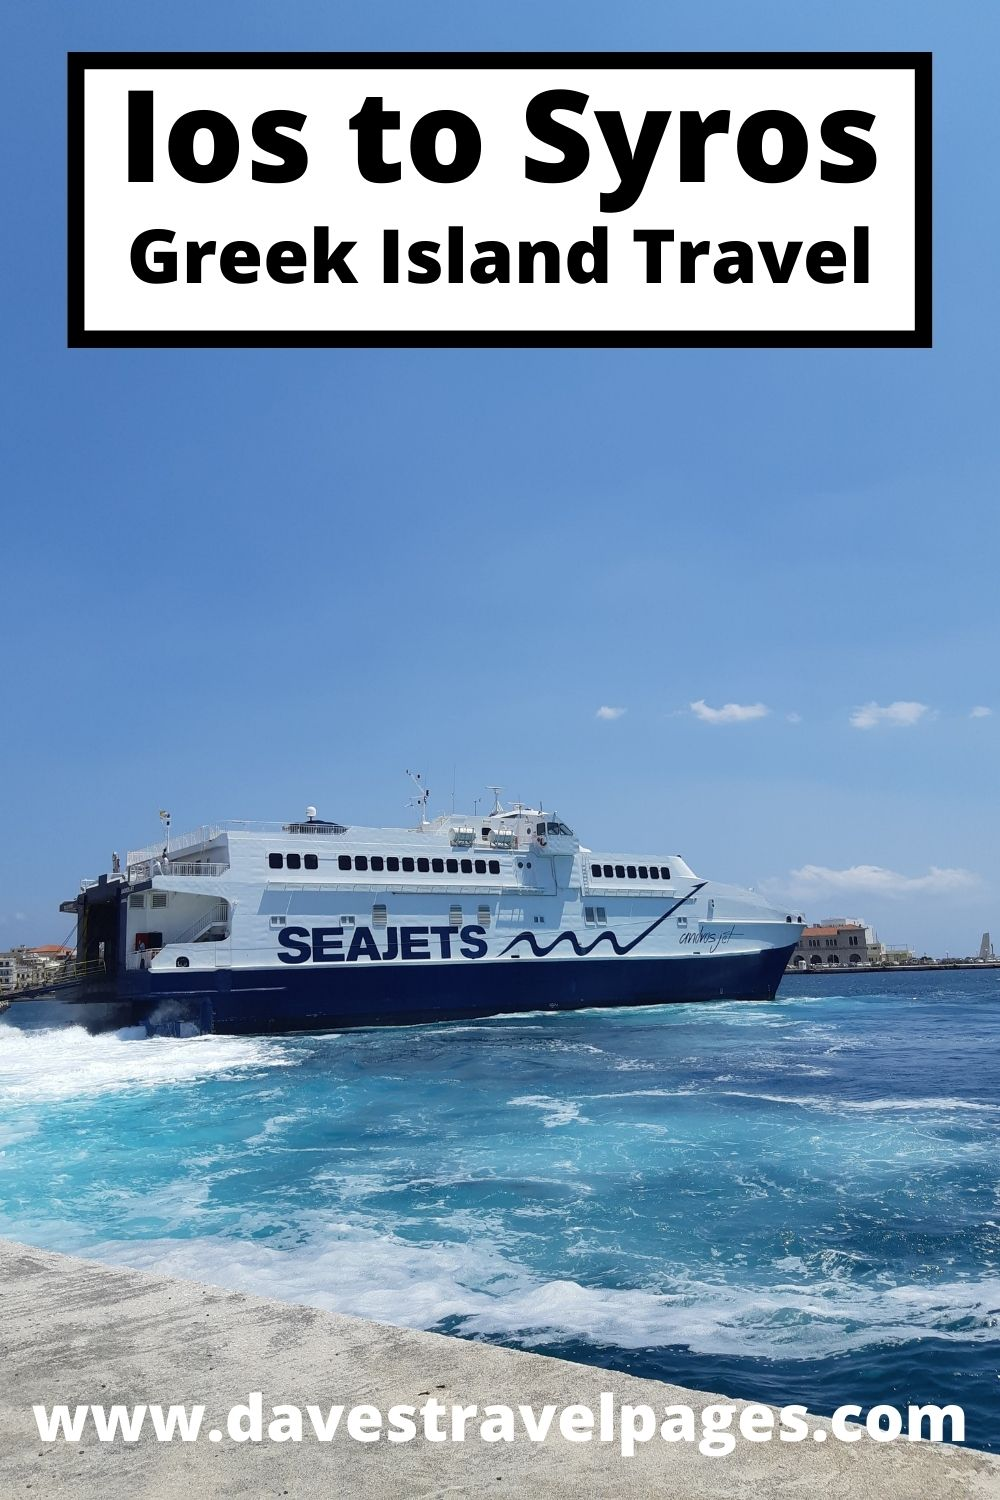 Traveling from IOs to Syros by ferry in Greece